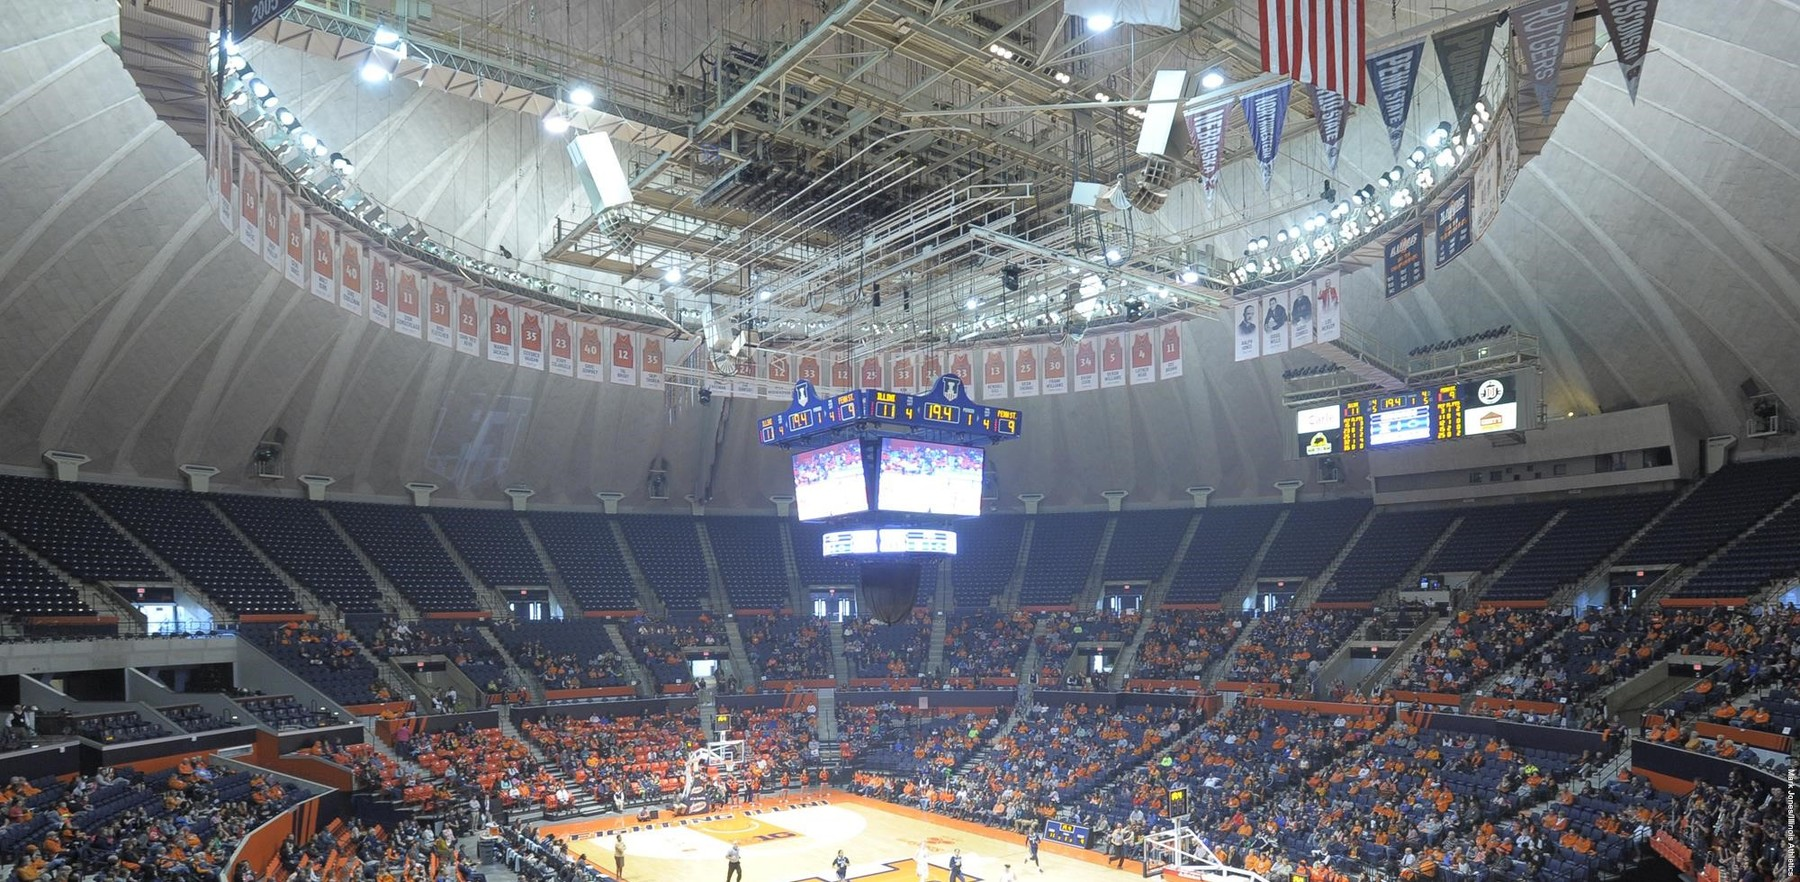 state farm center, wide shot of crowd